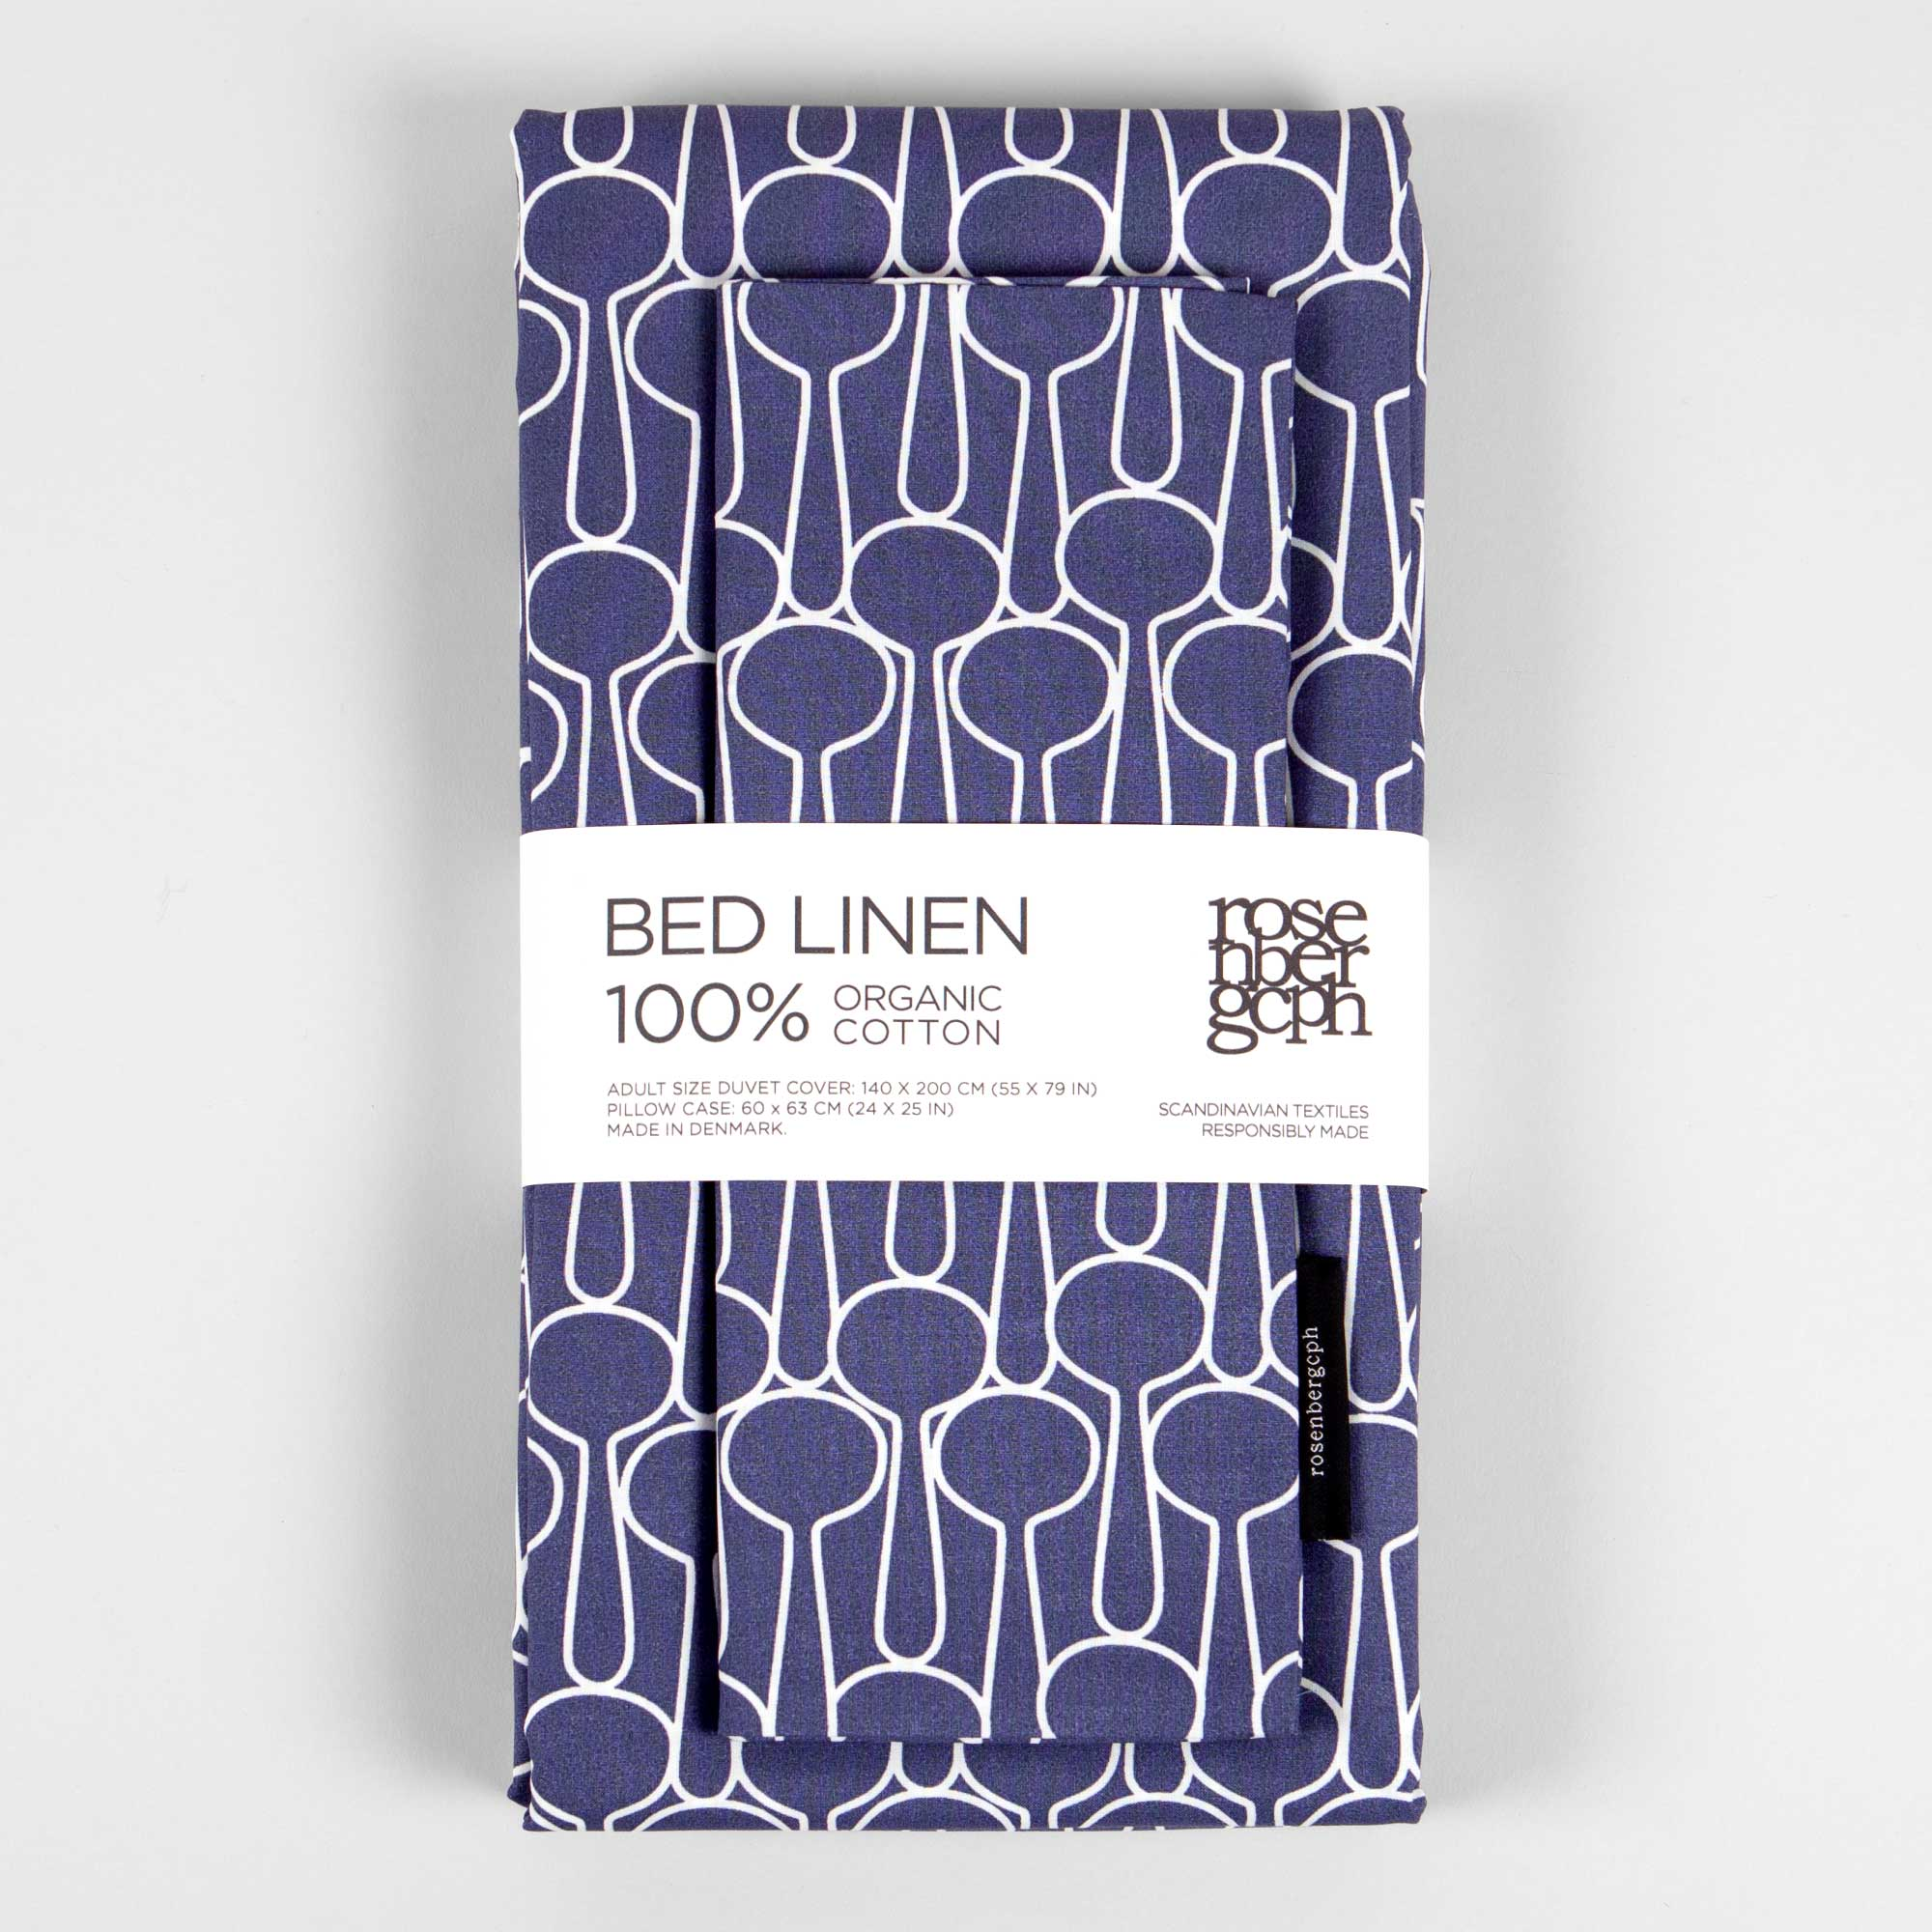 Bed linen, Big drop blue